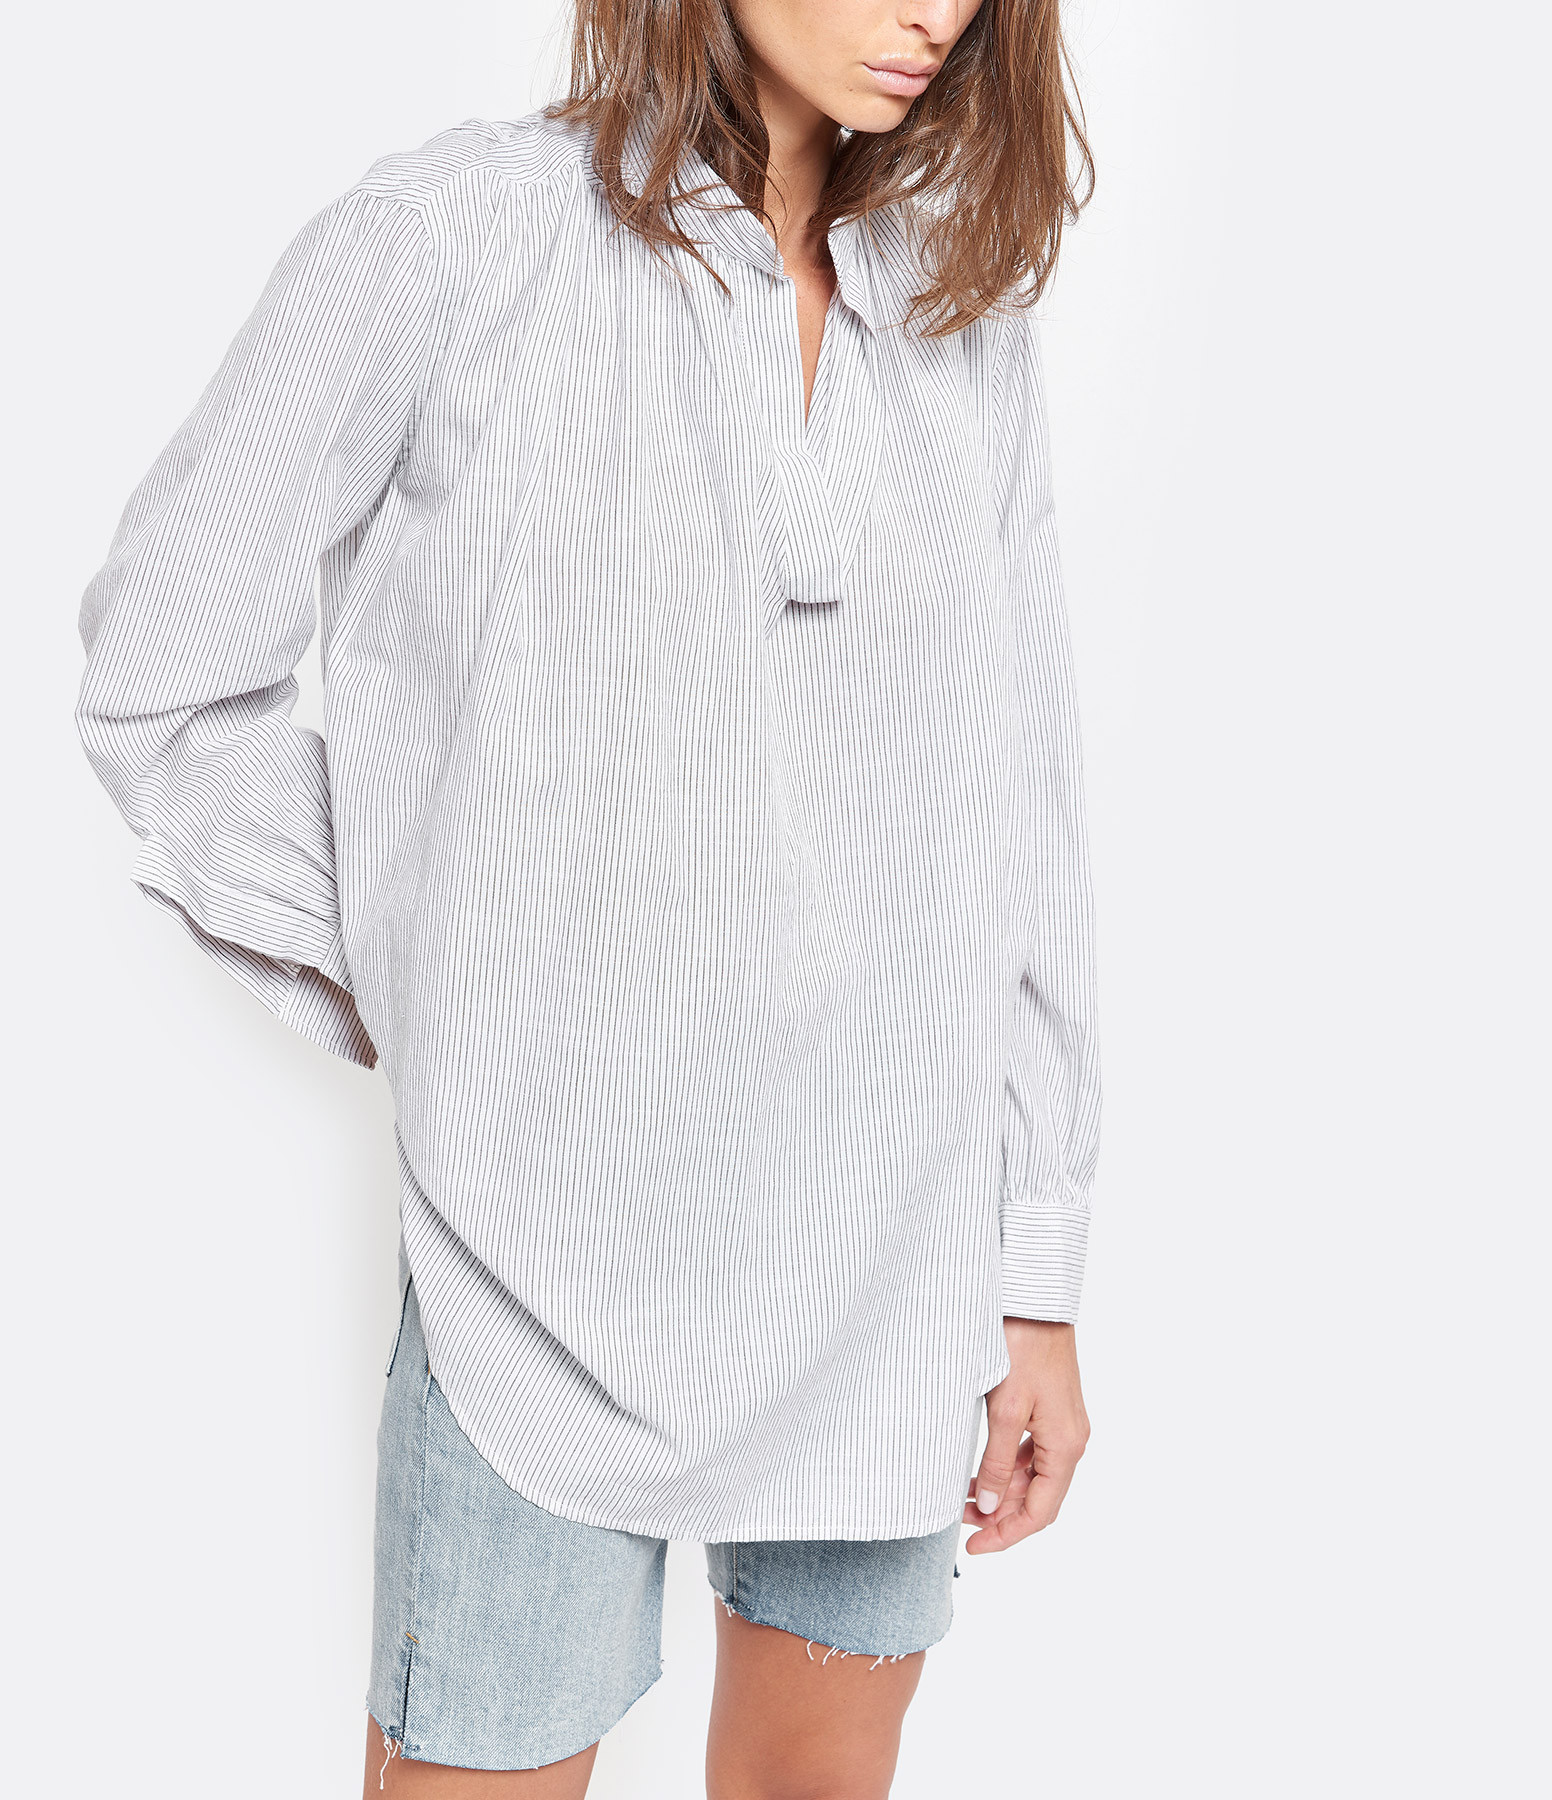 LAURENCE BRAS - Blouse Juul Coton Rayures Gris